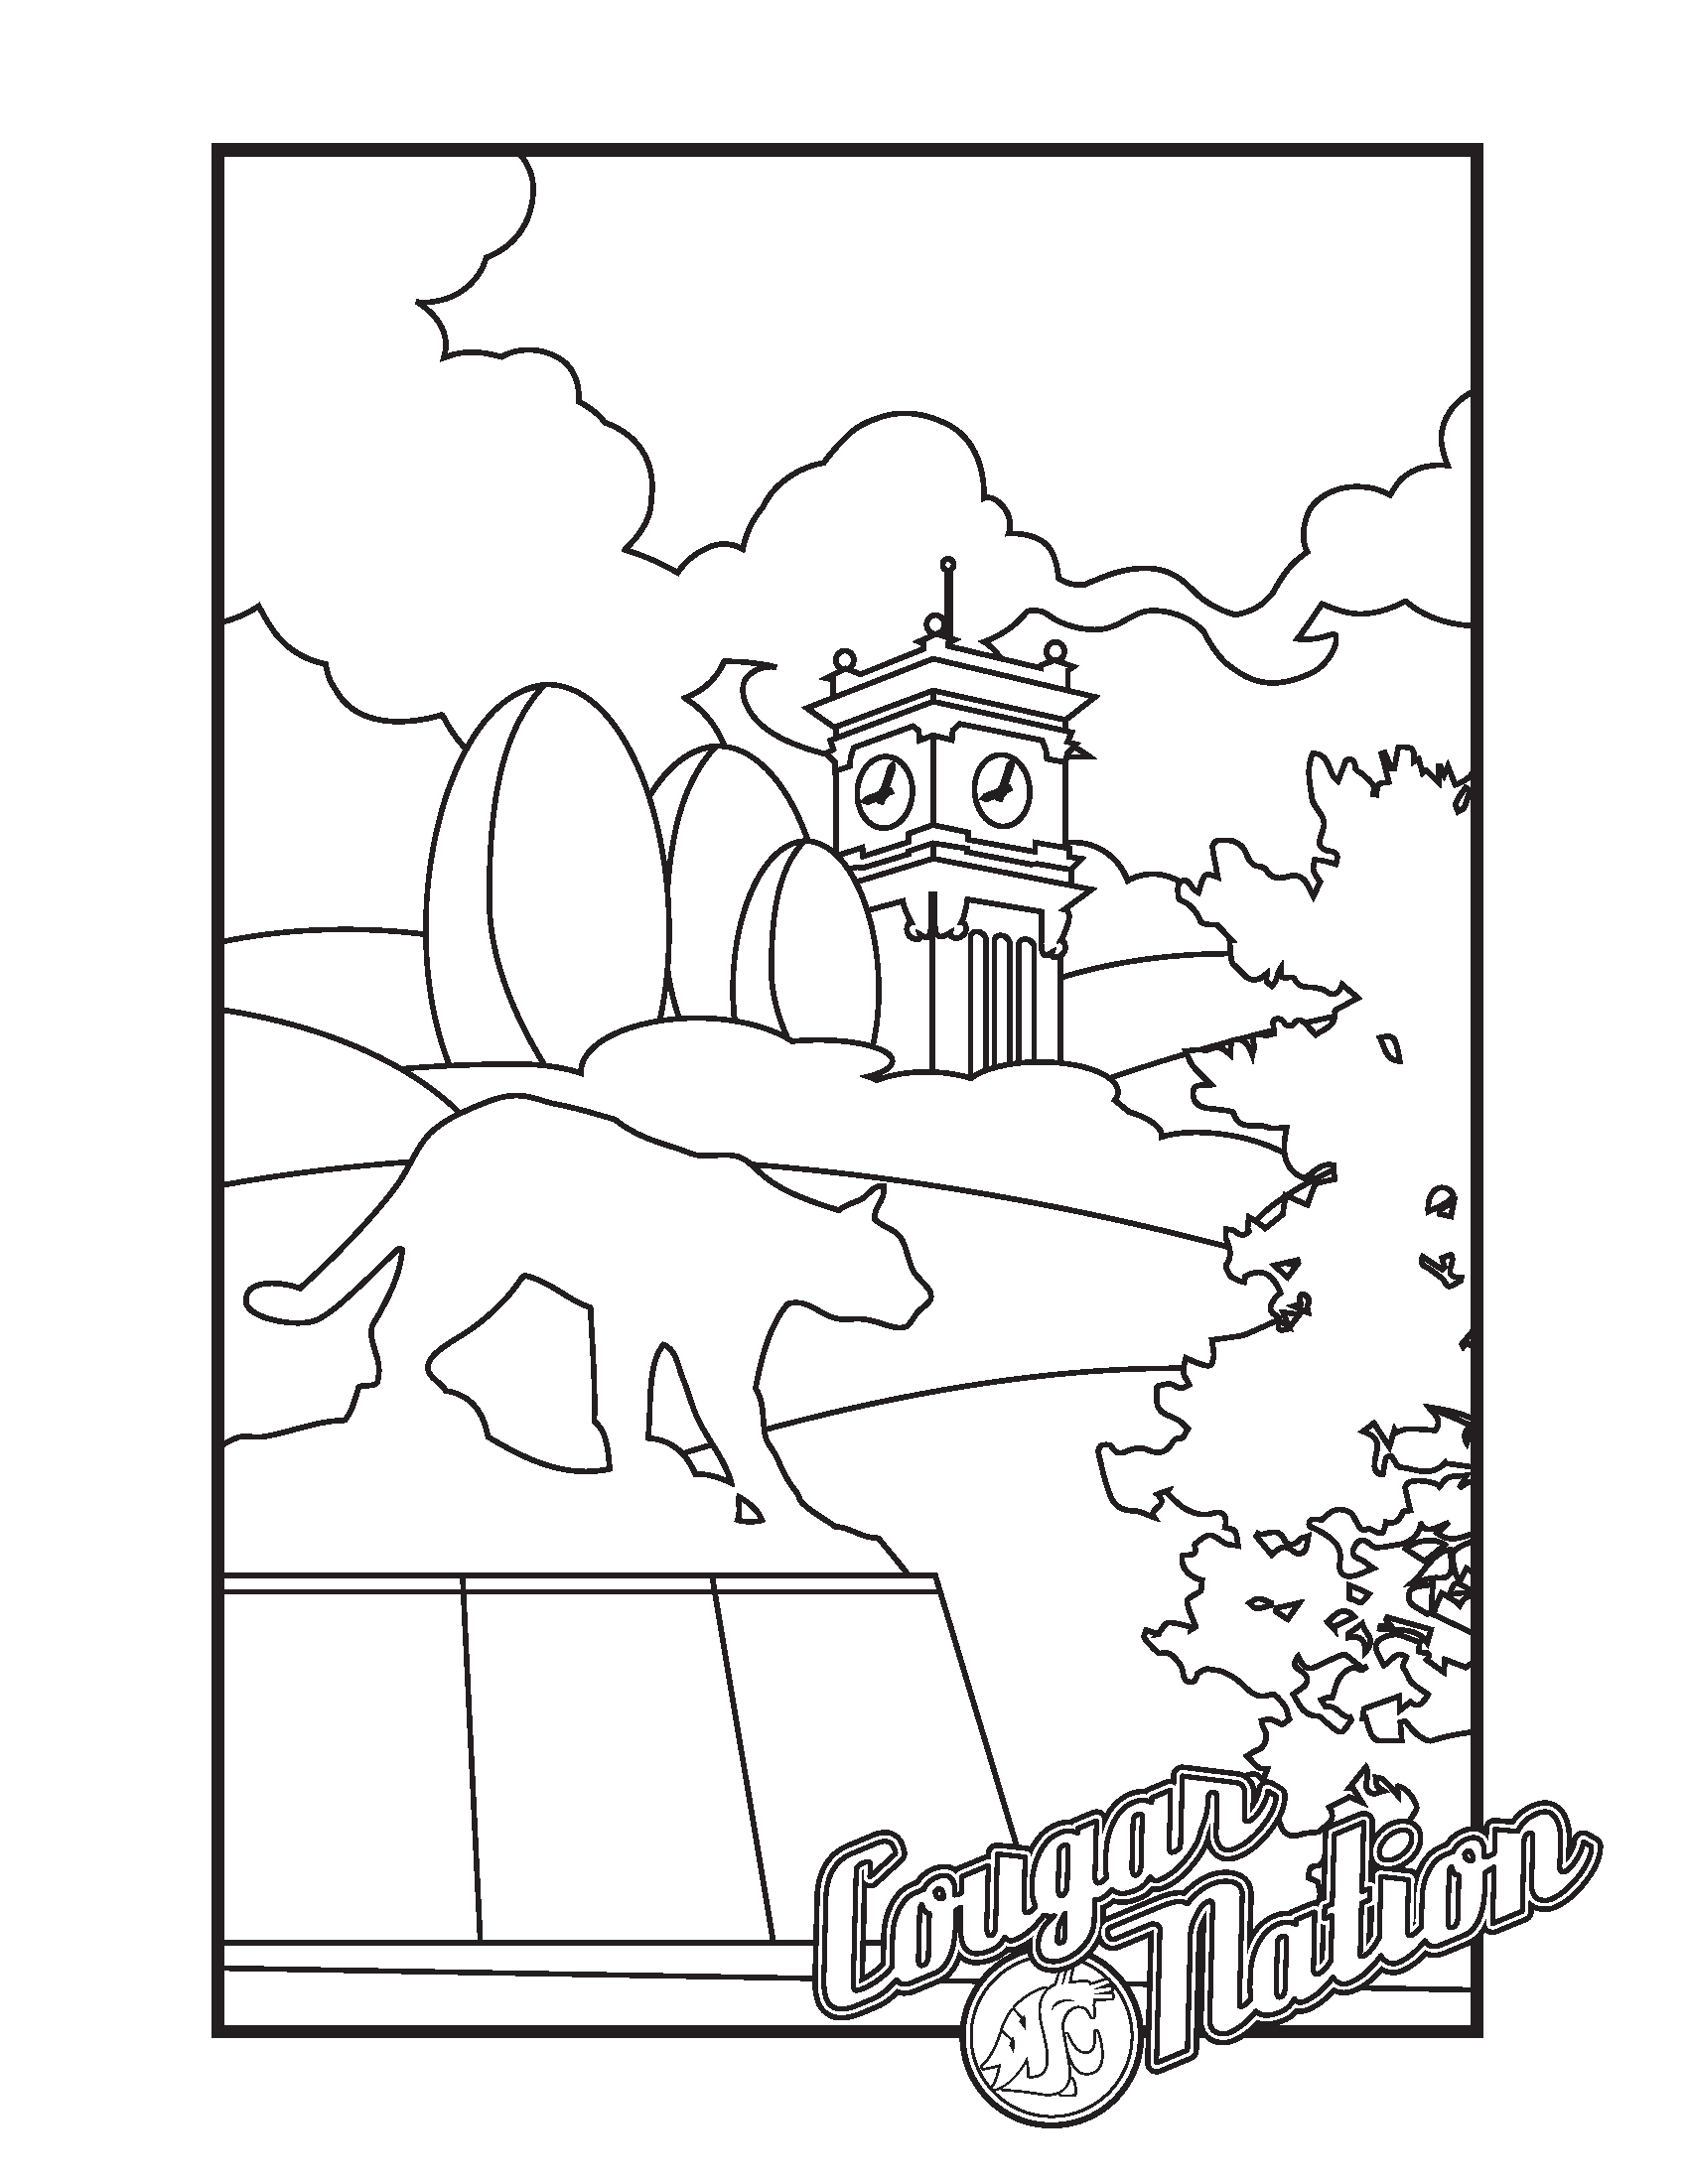 Washington State Tree coloring page | Free Printable Coloring Pages | 2200x1700